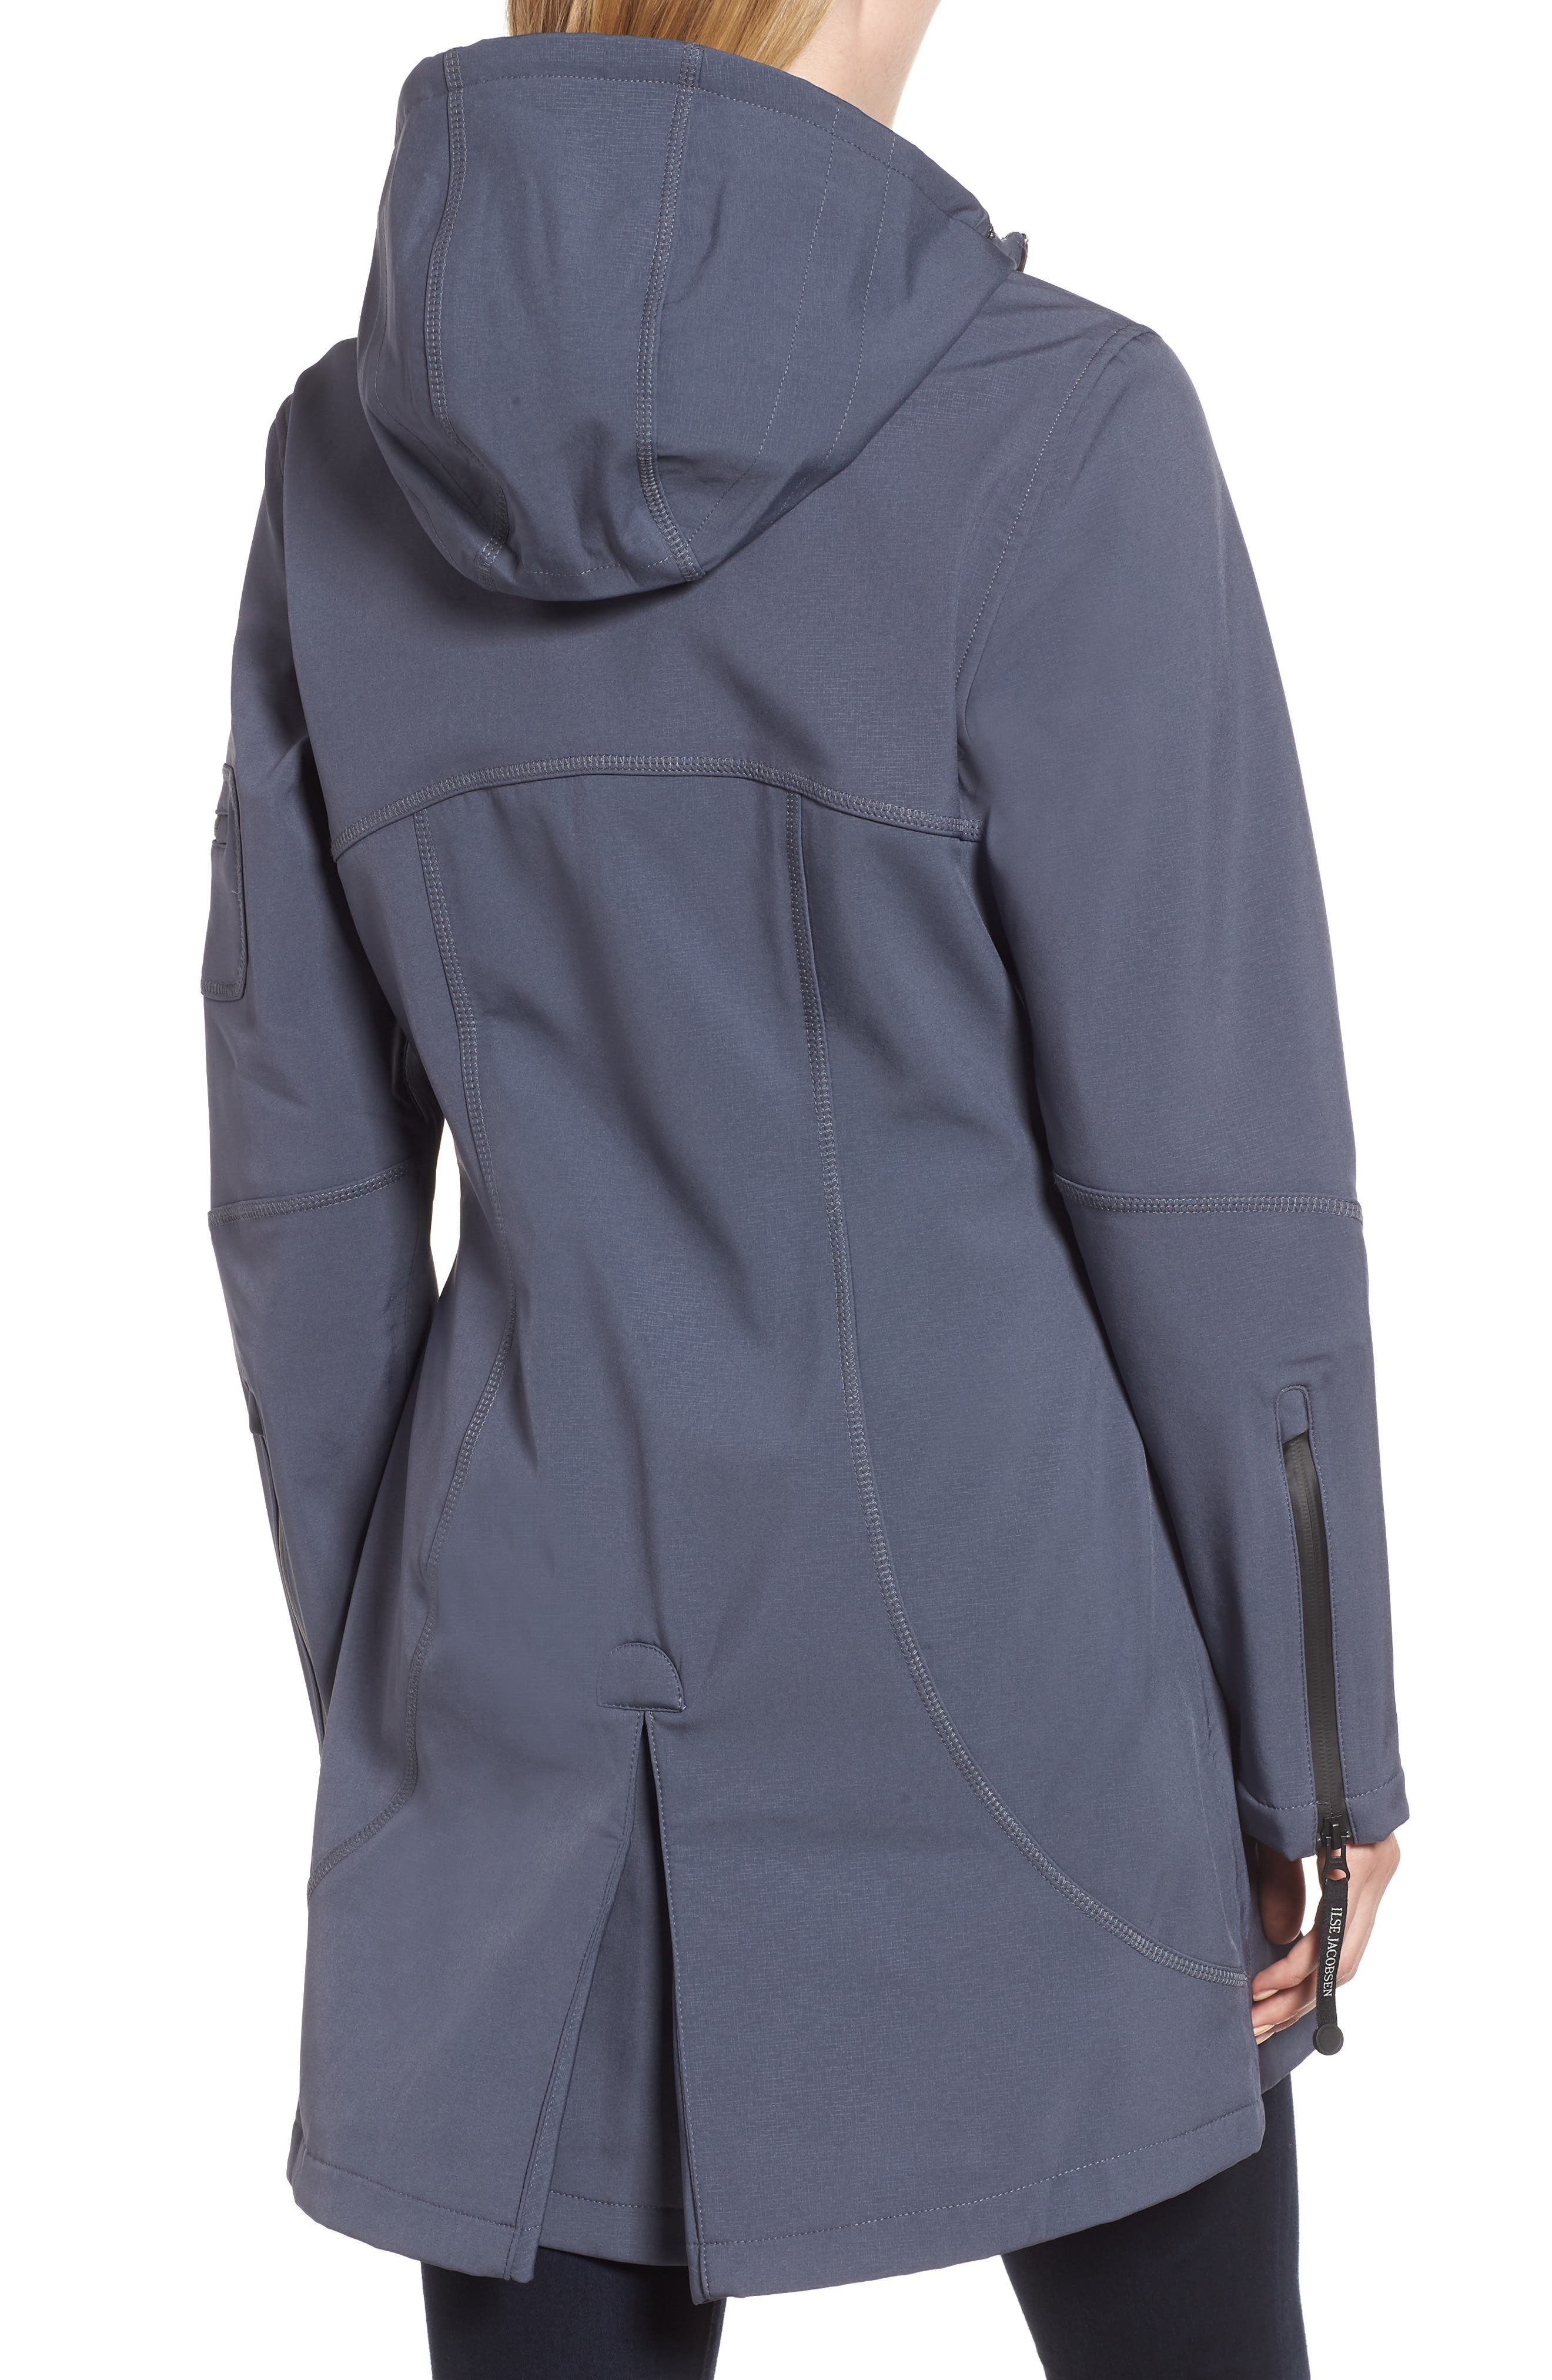 Rain 7 Hooded Water Resistant Coat,                             Alternate thumbnail 2, color,                             BLUE GRAYNESS